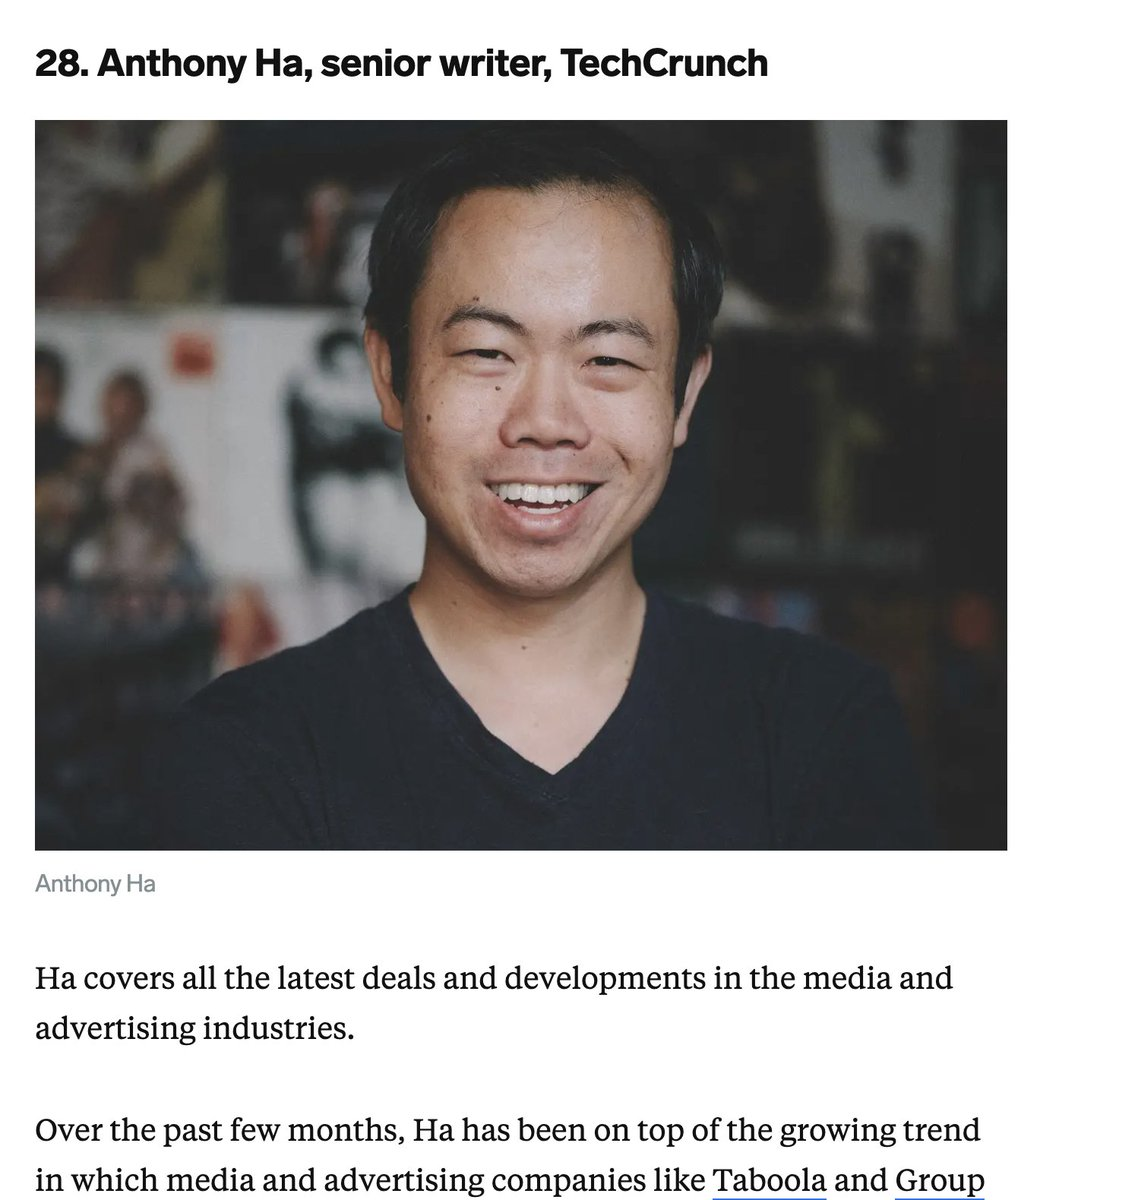 🥳 🥳 good to see @meganrosedickey and @anthonyha recognized for this awesome work :)